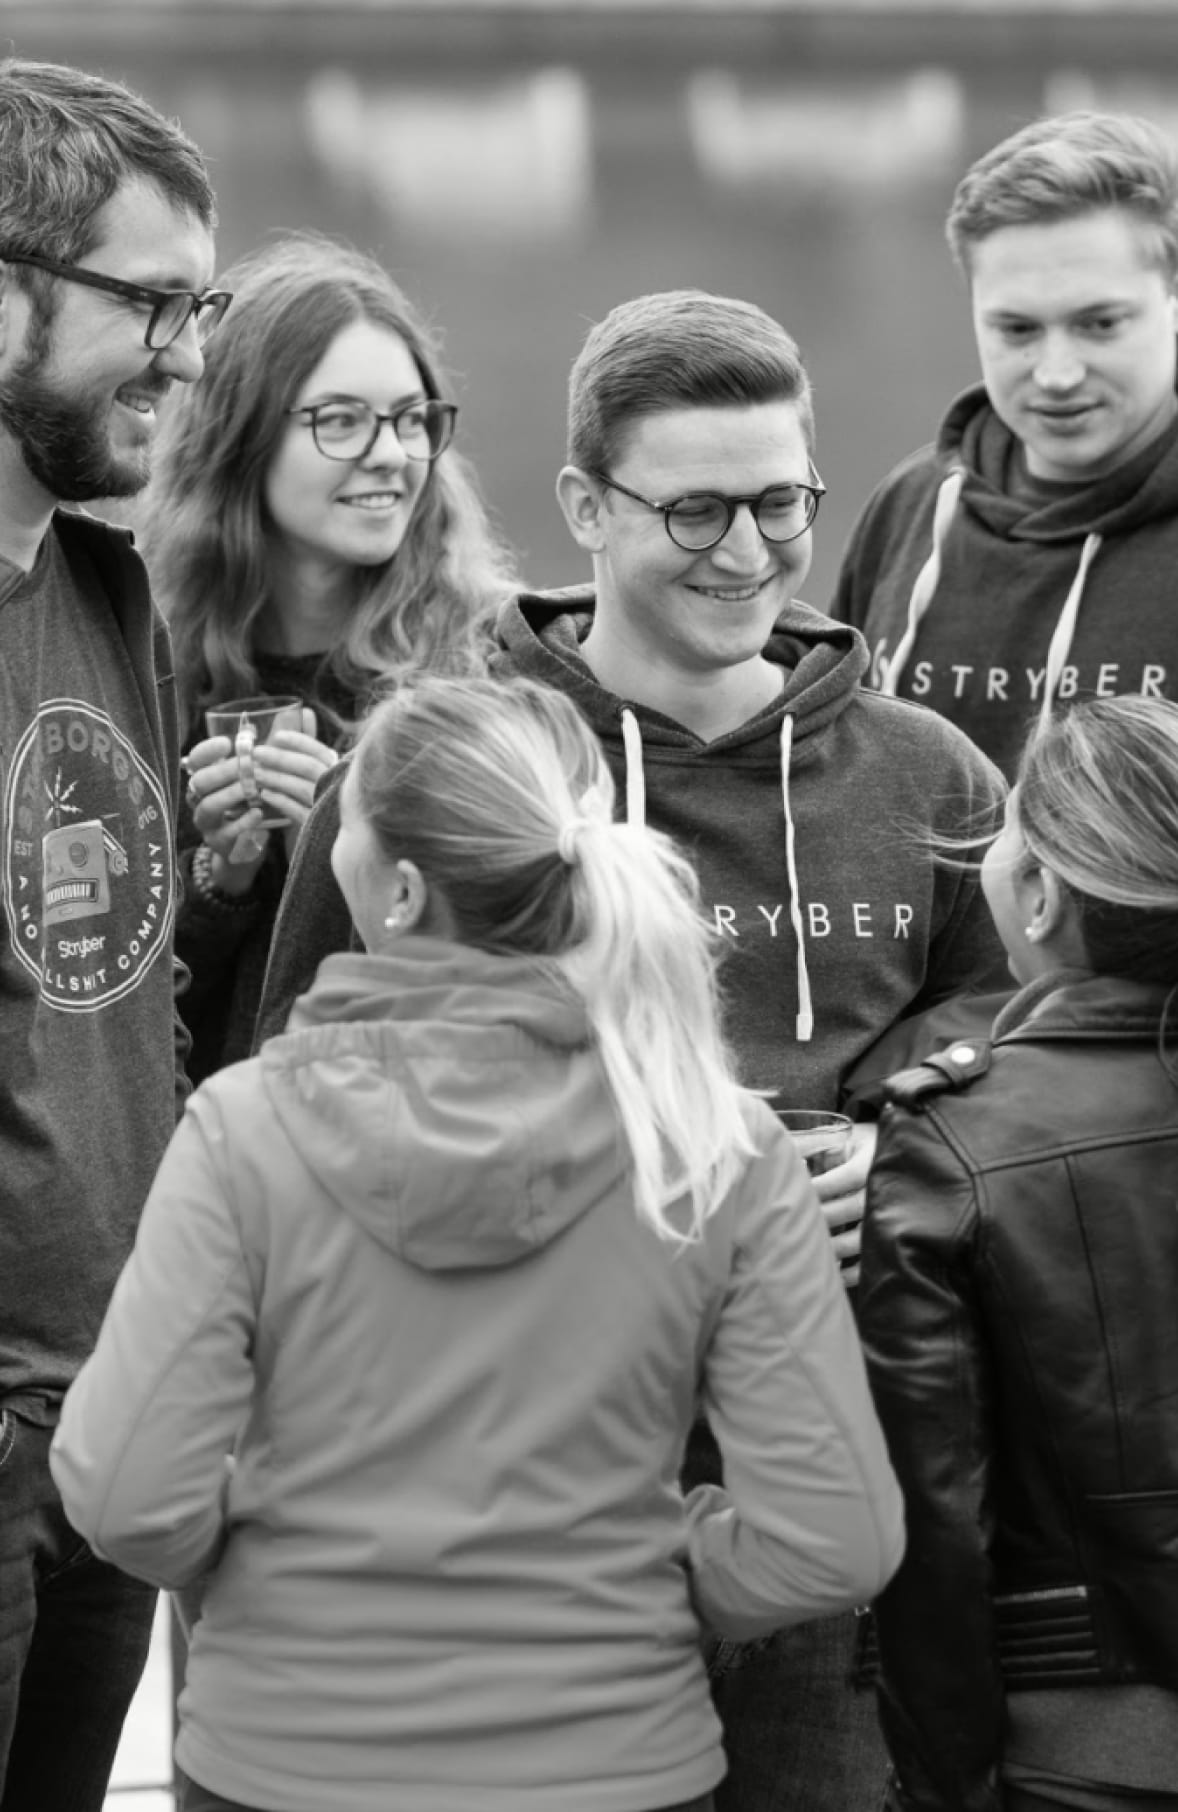 Black & white photo of the Stryber Team on an event